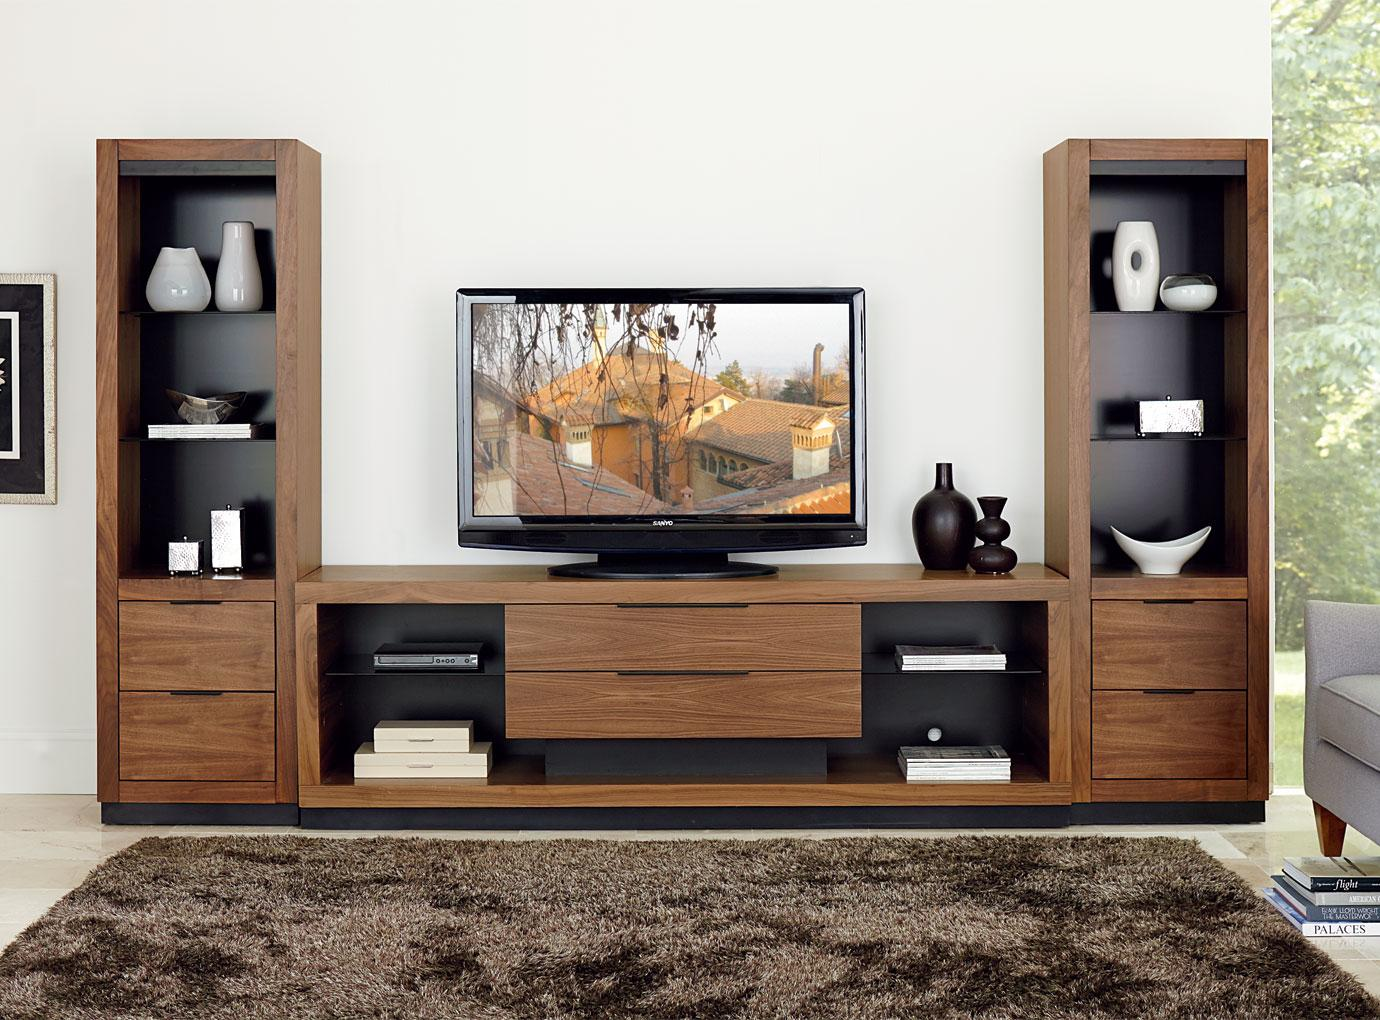 Martin Home Furnishings Stratus-Walnut Center Wall Unit with Drawer Piers - Item Number: SS 2x970DR+380